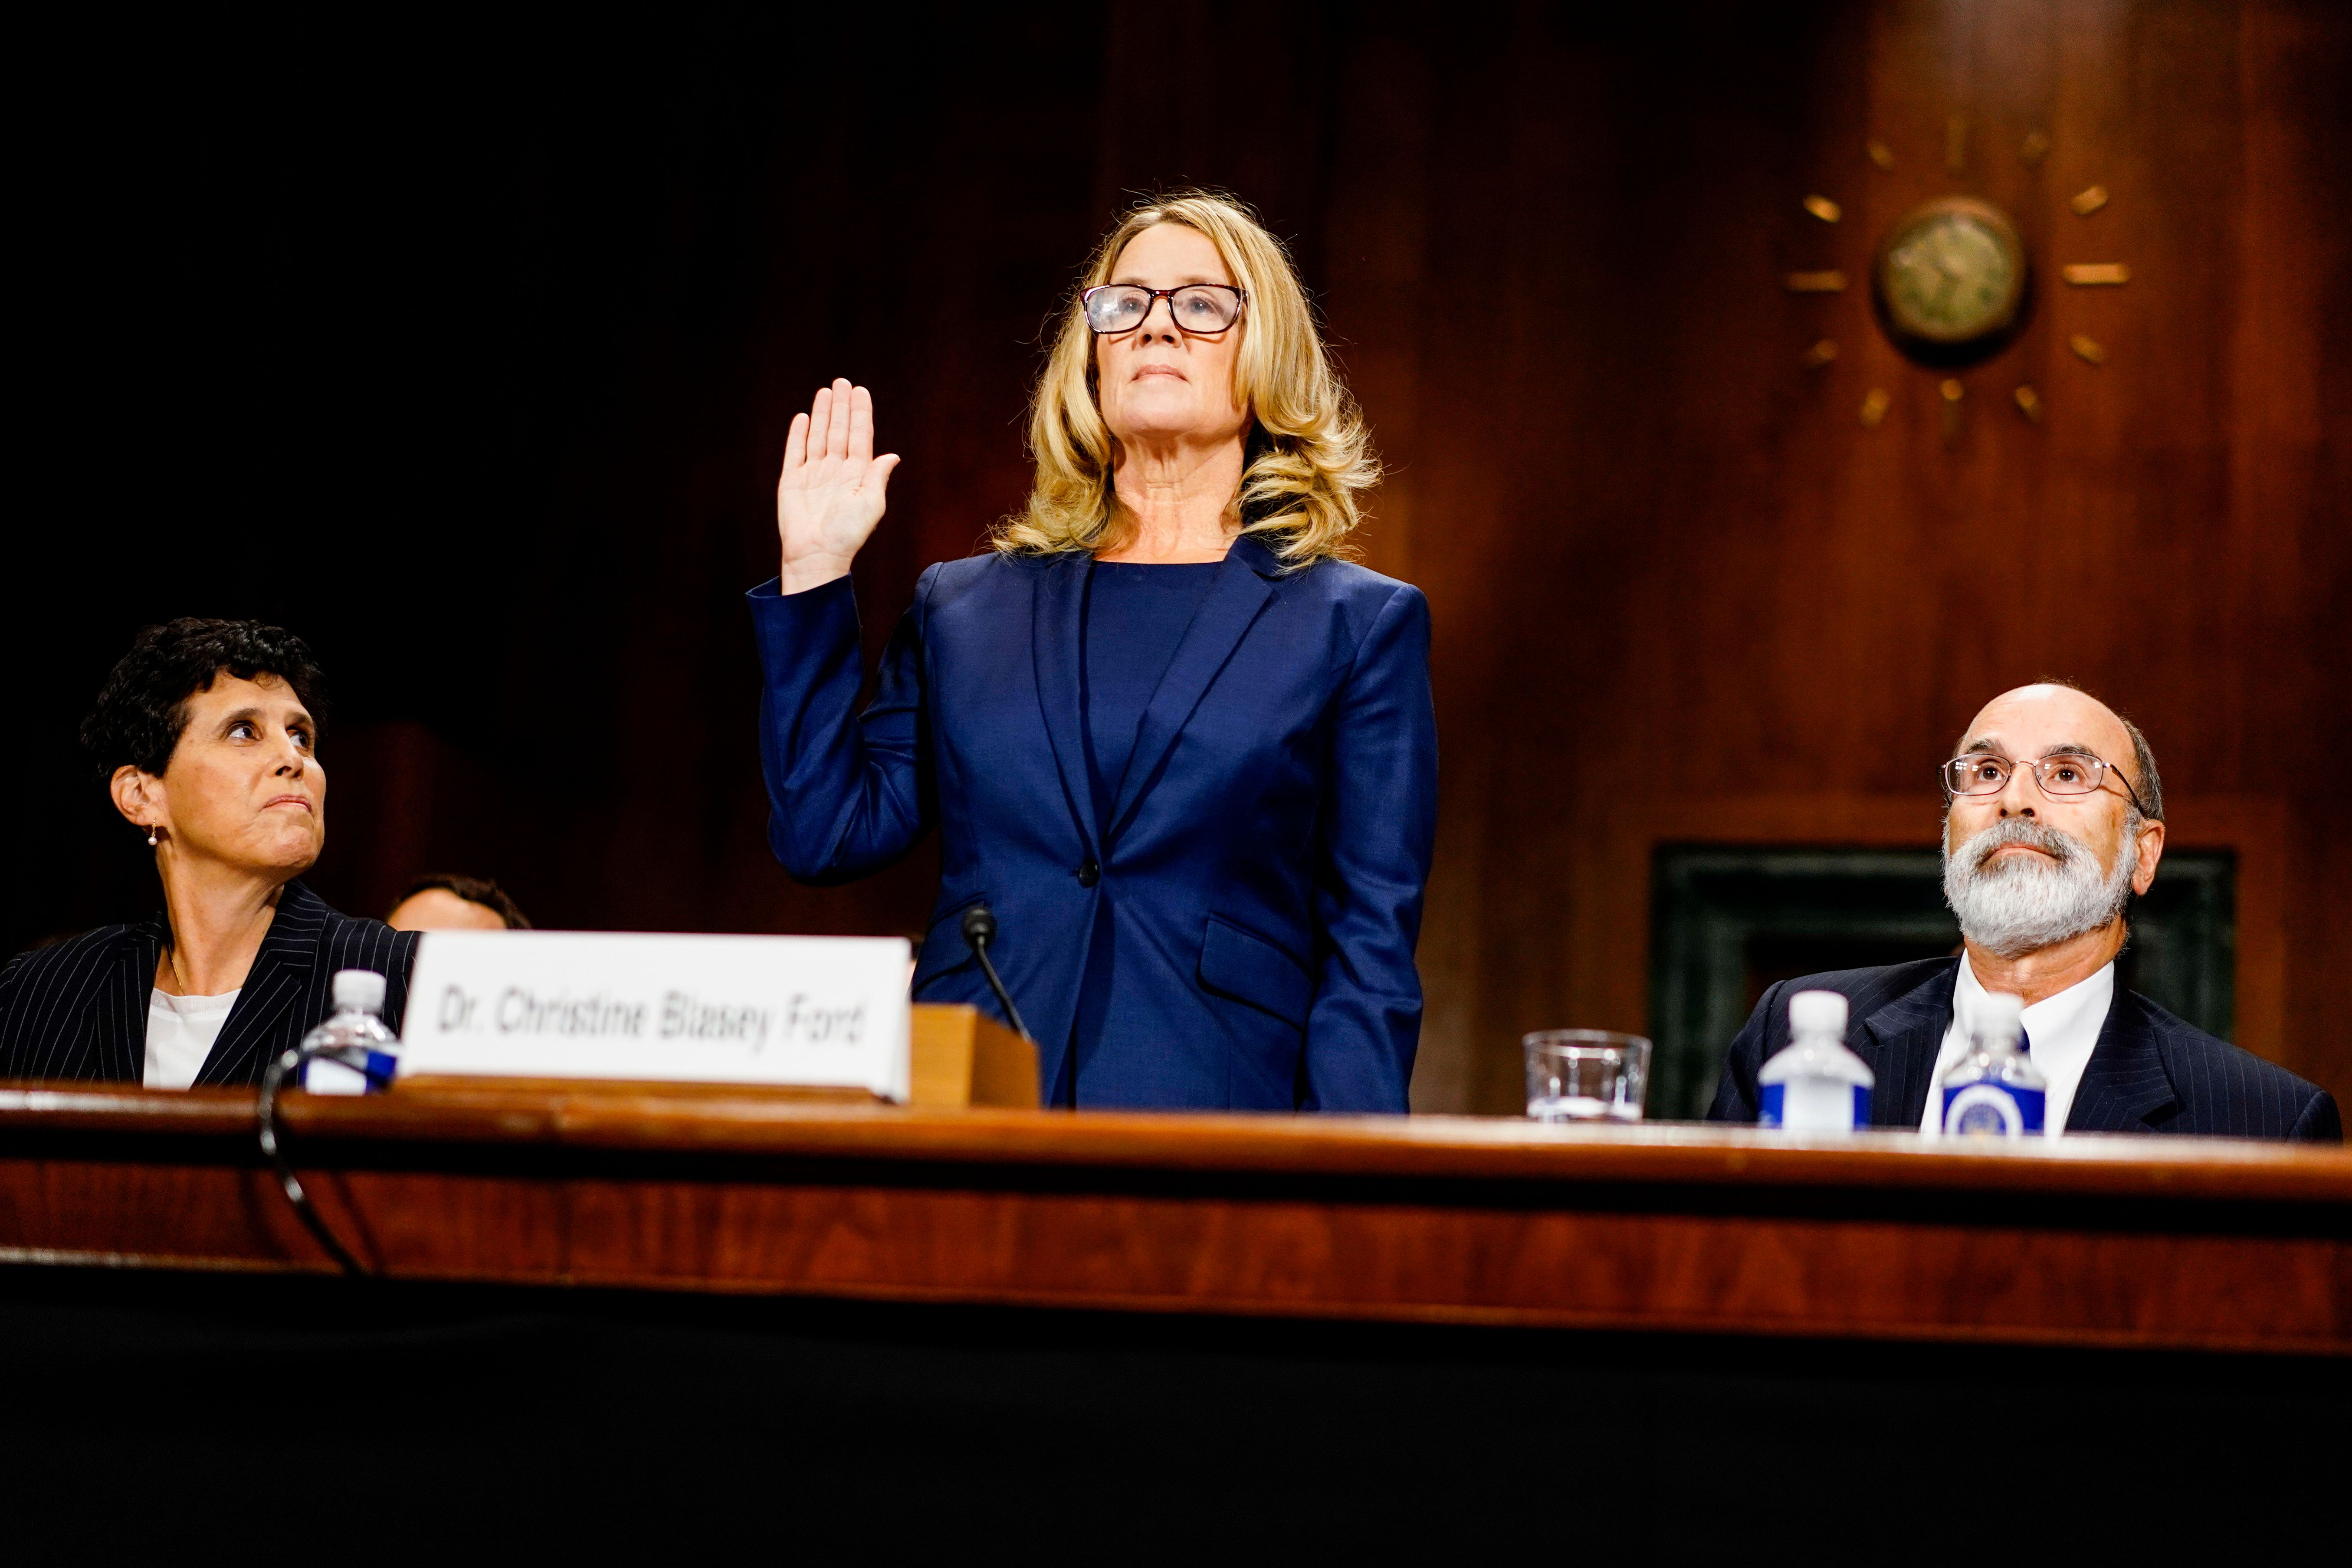 WASHINGTON, DC - SEPTEMBER 27: Christine Blasey Ford swears in at a Senate Judiciary Committee hearing on Thursday, September 27, 2018 on Capitol Hill. (Melina Mara/Pool/The Washington Post via Getty Images)